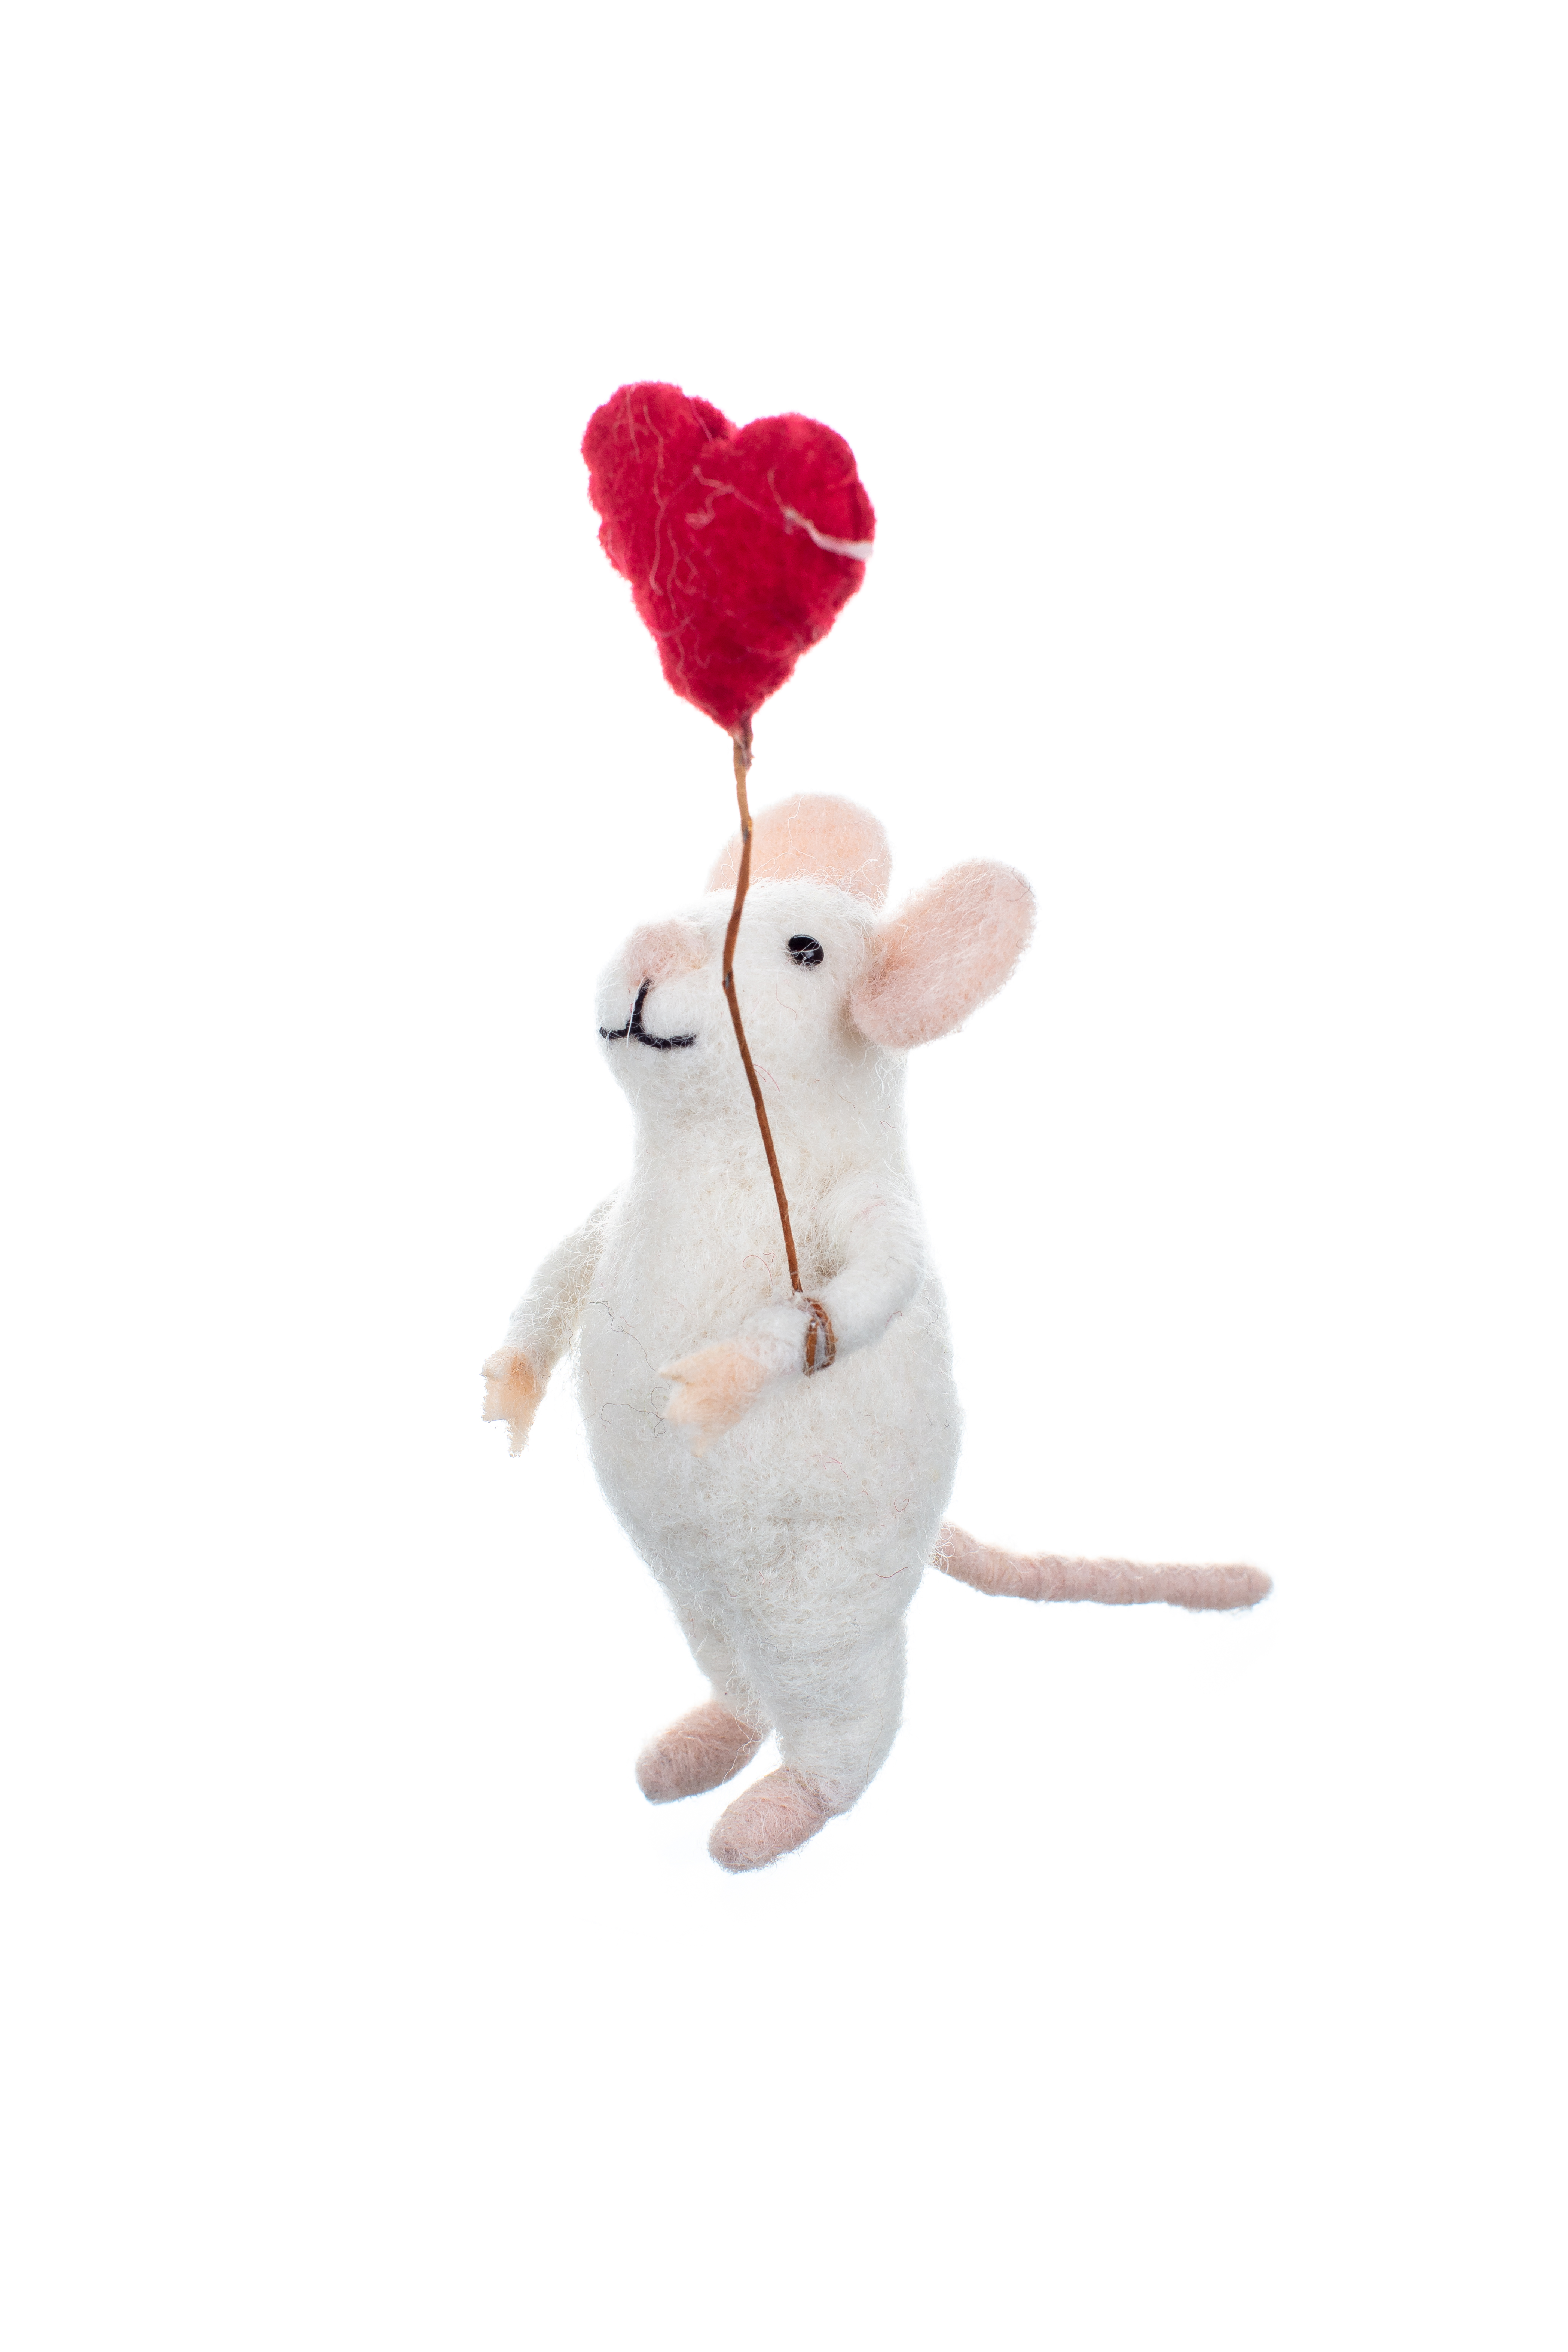 'Maisie' Mouse with Heart Balloon